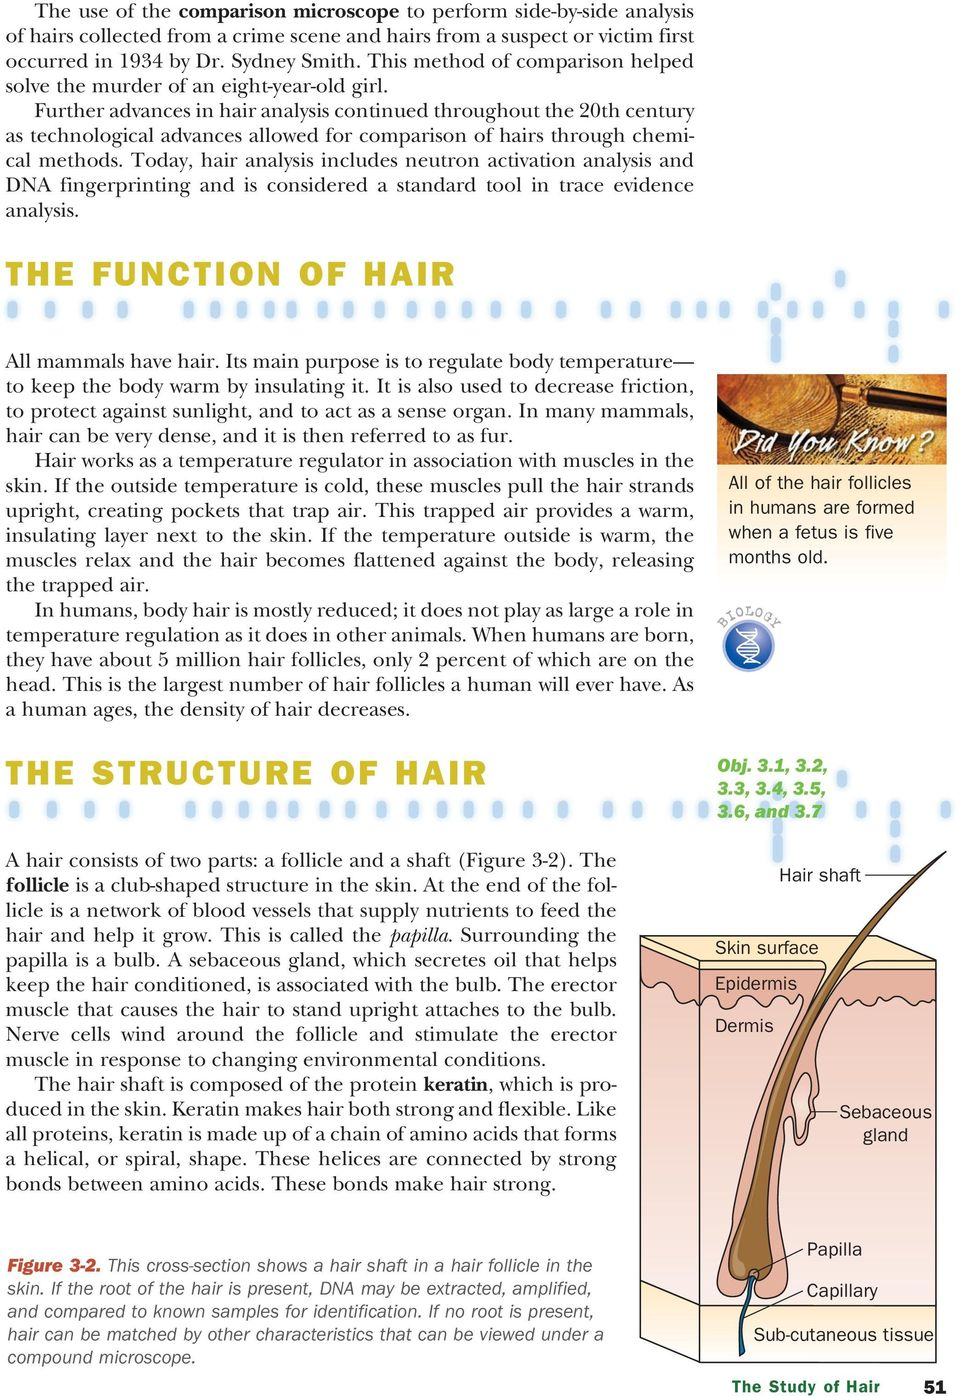 Further advances in hair analysis continued throughout the 20th century as technological advances allowed for comparison of hairs through chemical methods.